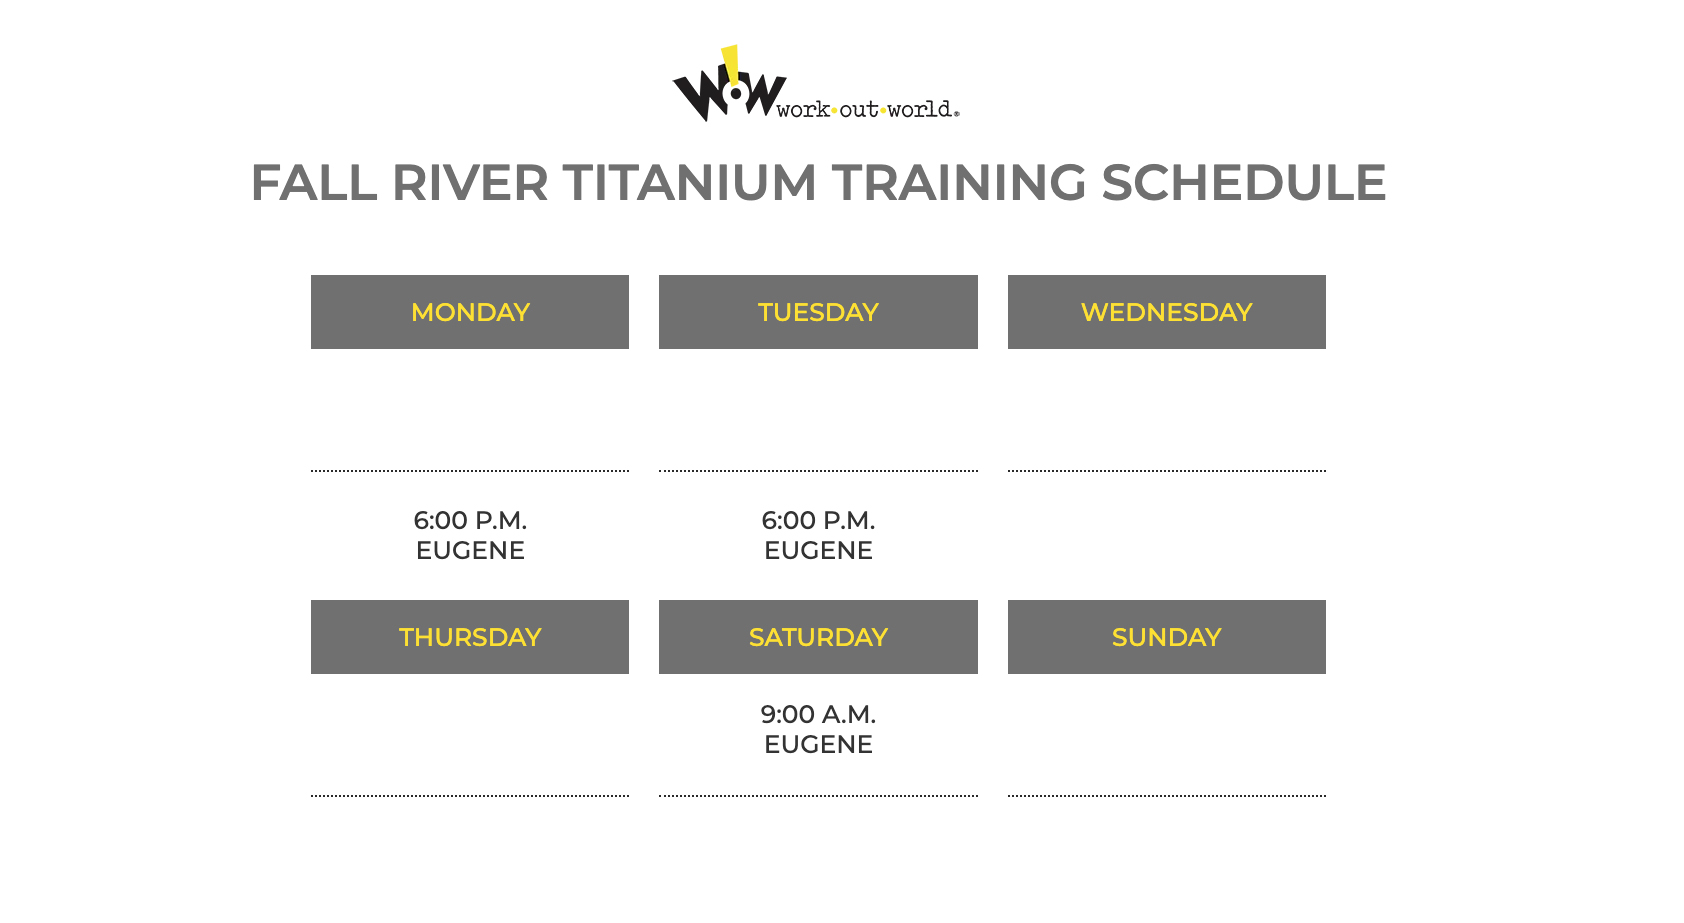 FALL RIVER - Work Out World New England